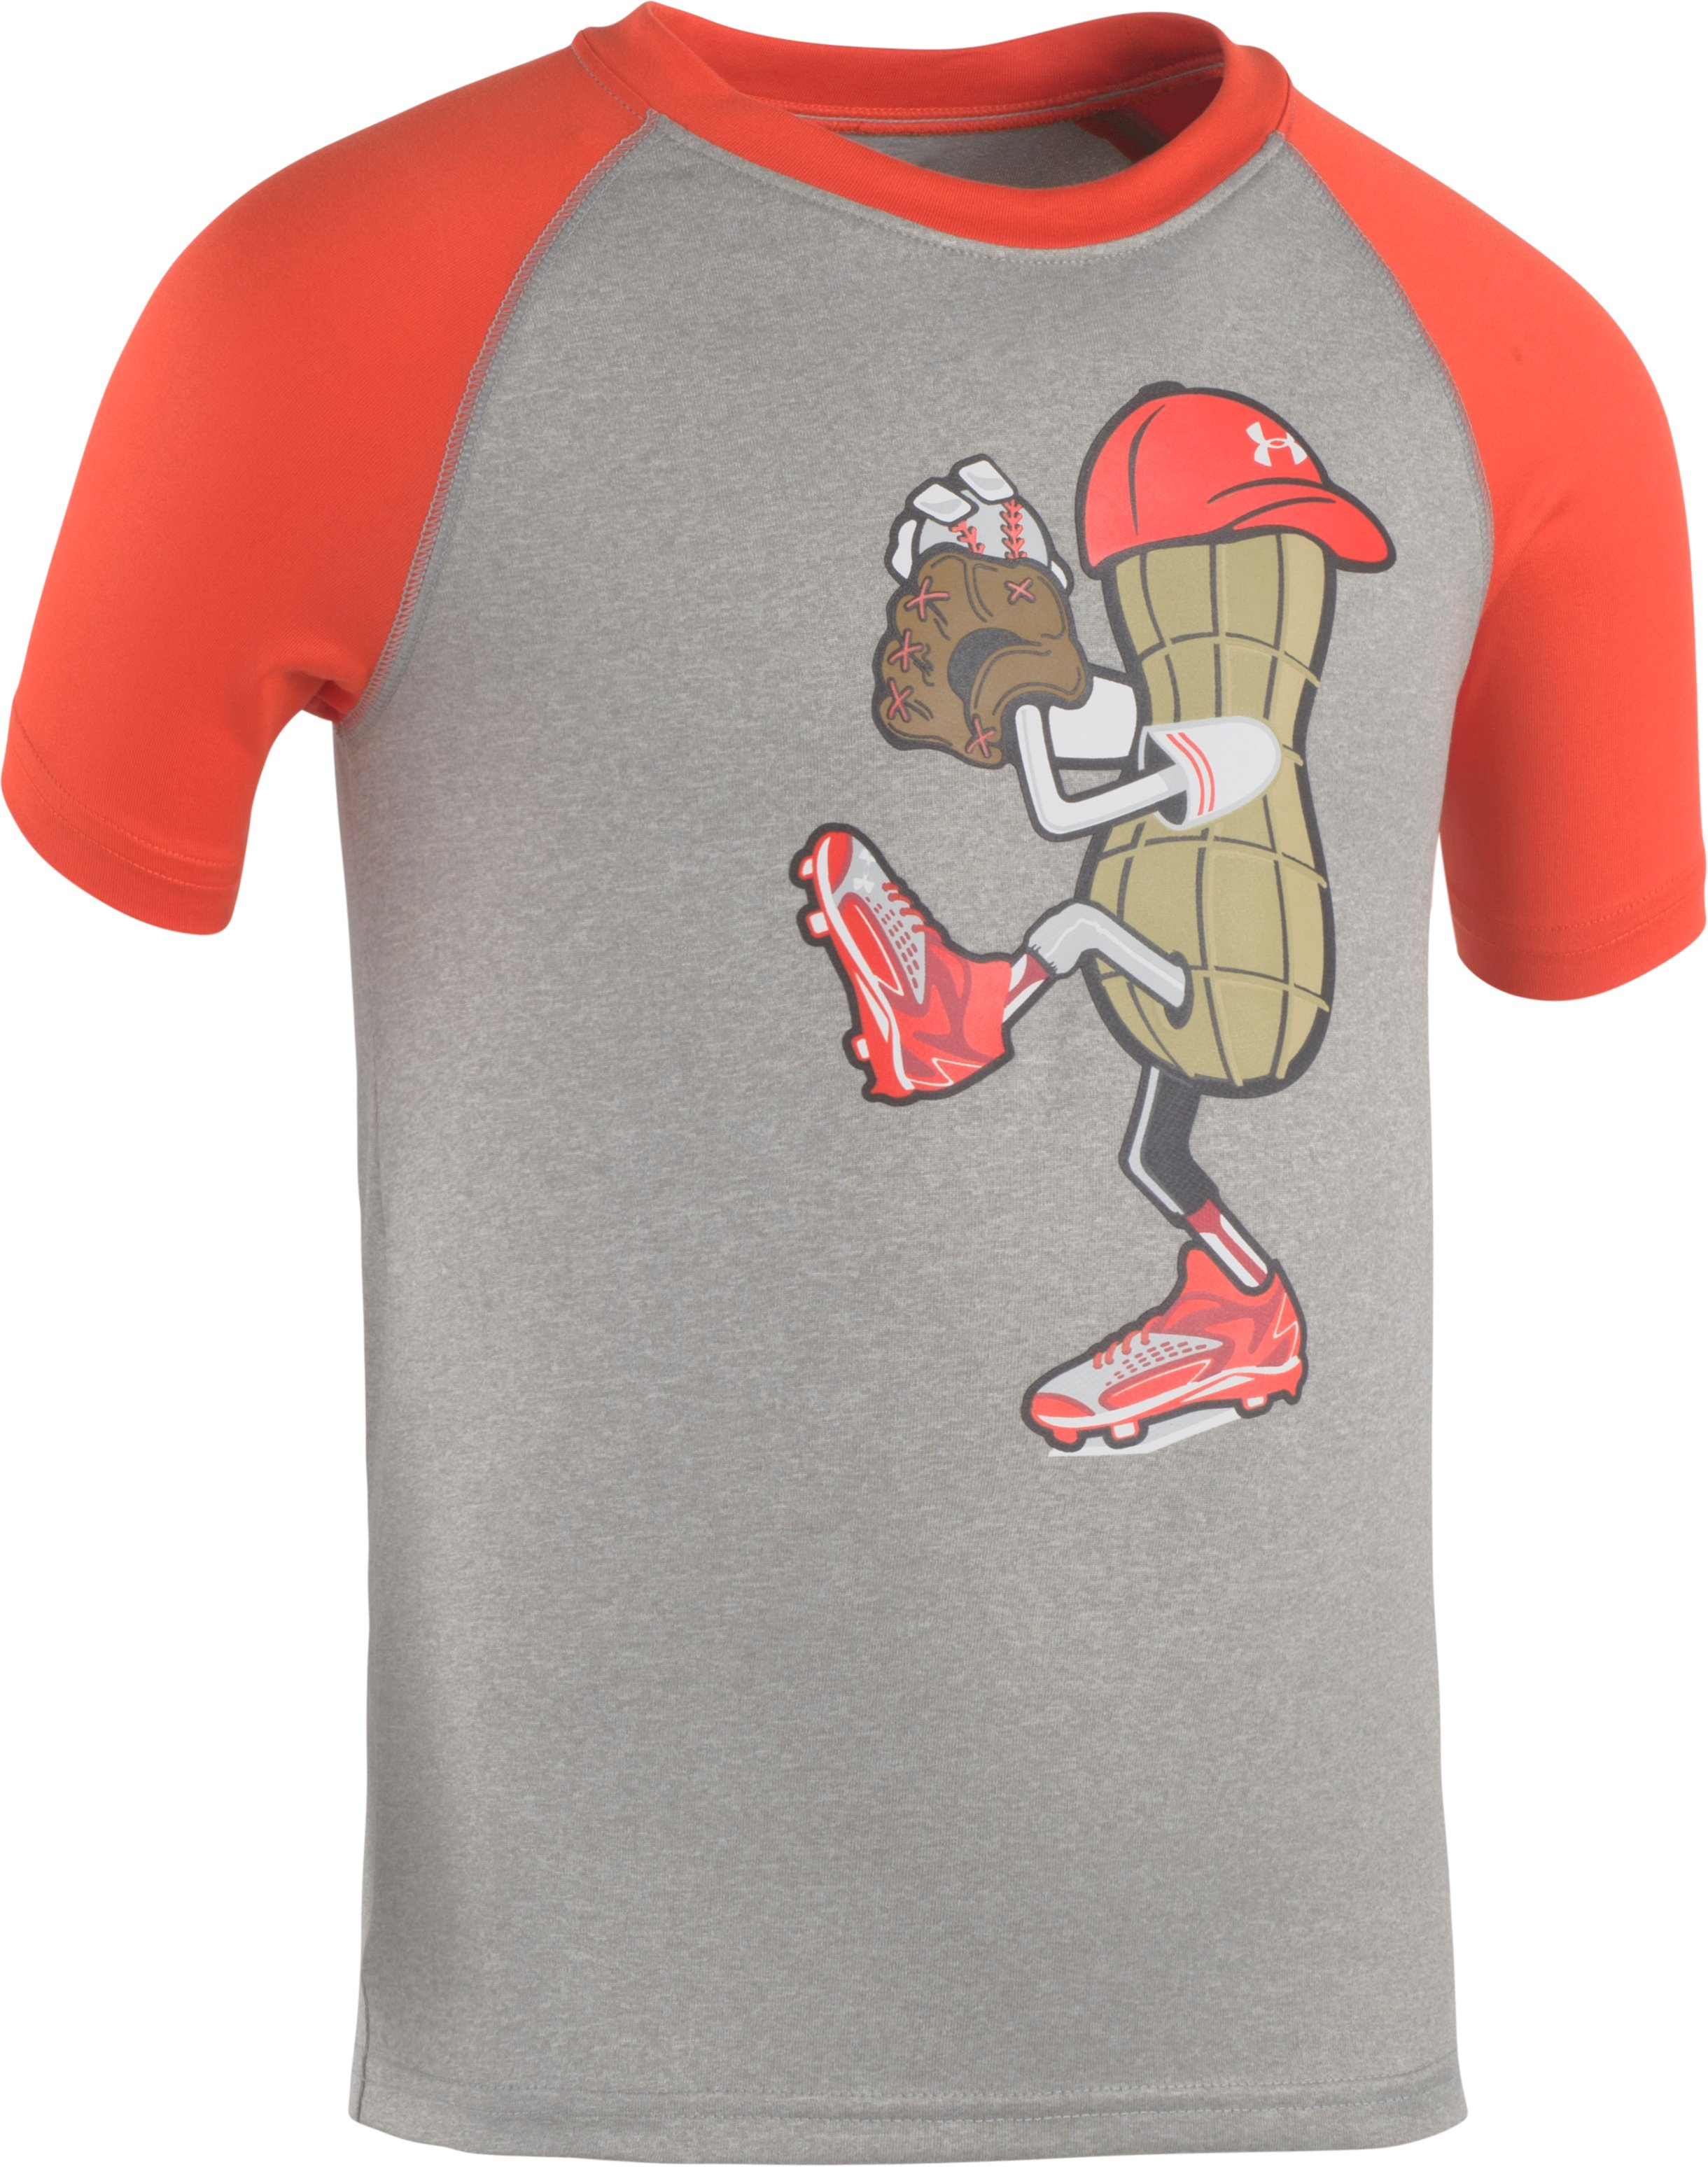 Boys' Pre-School UA Peanut Pitcher Short Sleeve Shirt, True Gray Heather